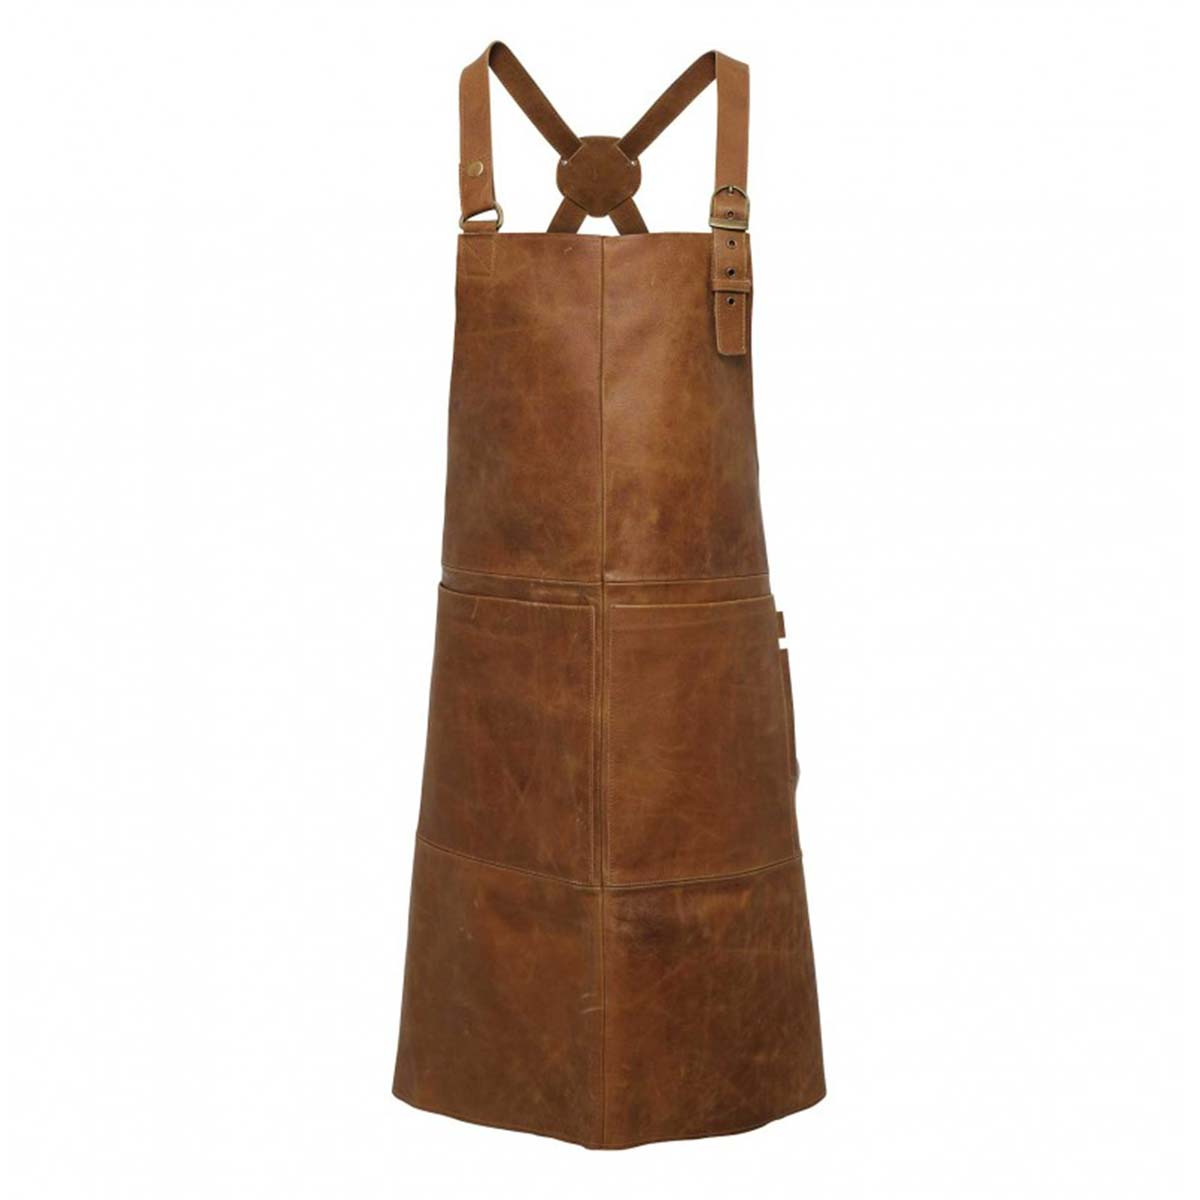 Artisan 100% Leather Cross Back Bib Apron - pr140_brown_tan